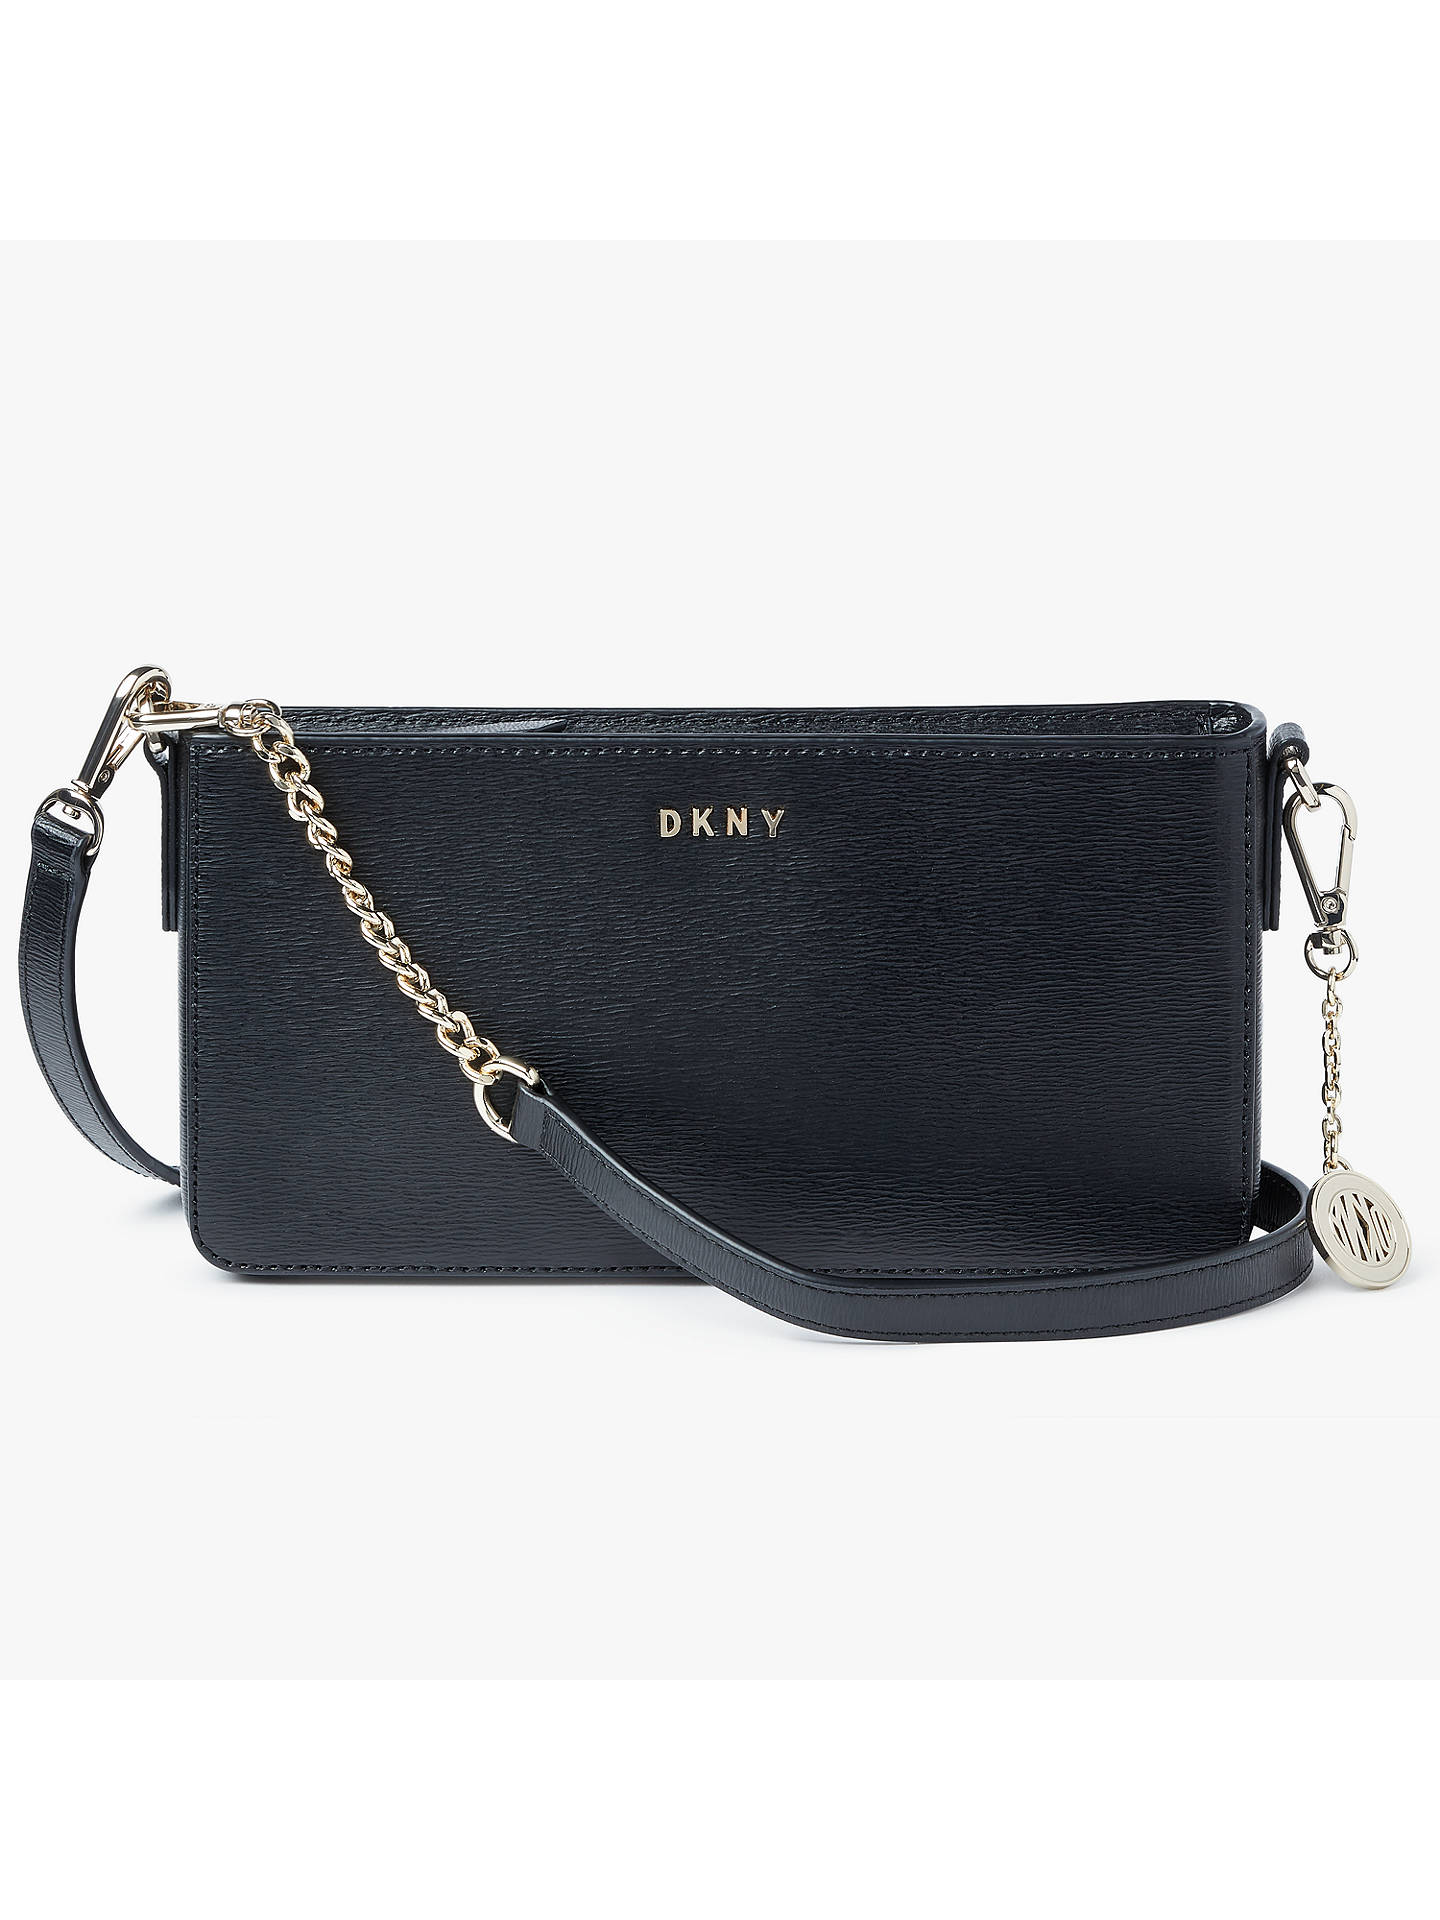 3da380167b0 DKNY Sutton Leather Small Cross Body Bag at John Lewis   Partners